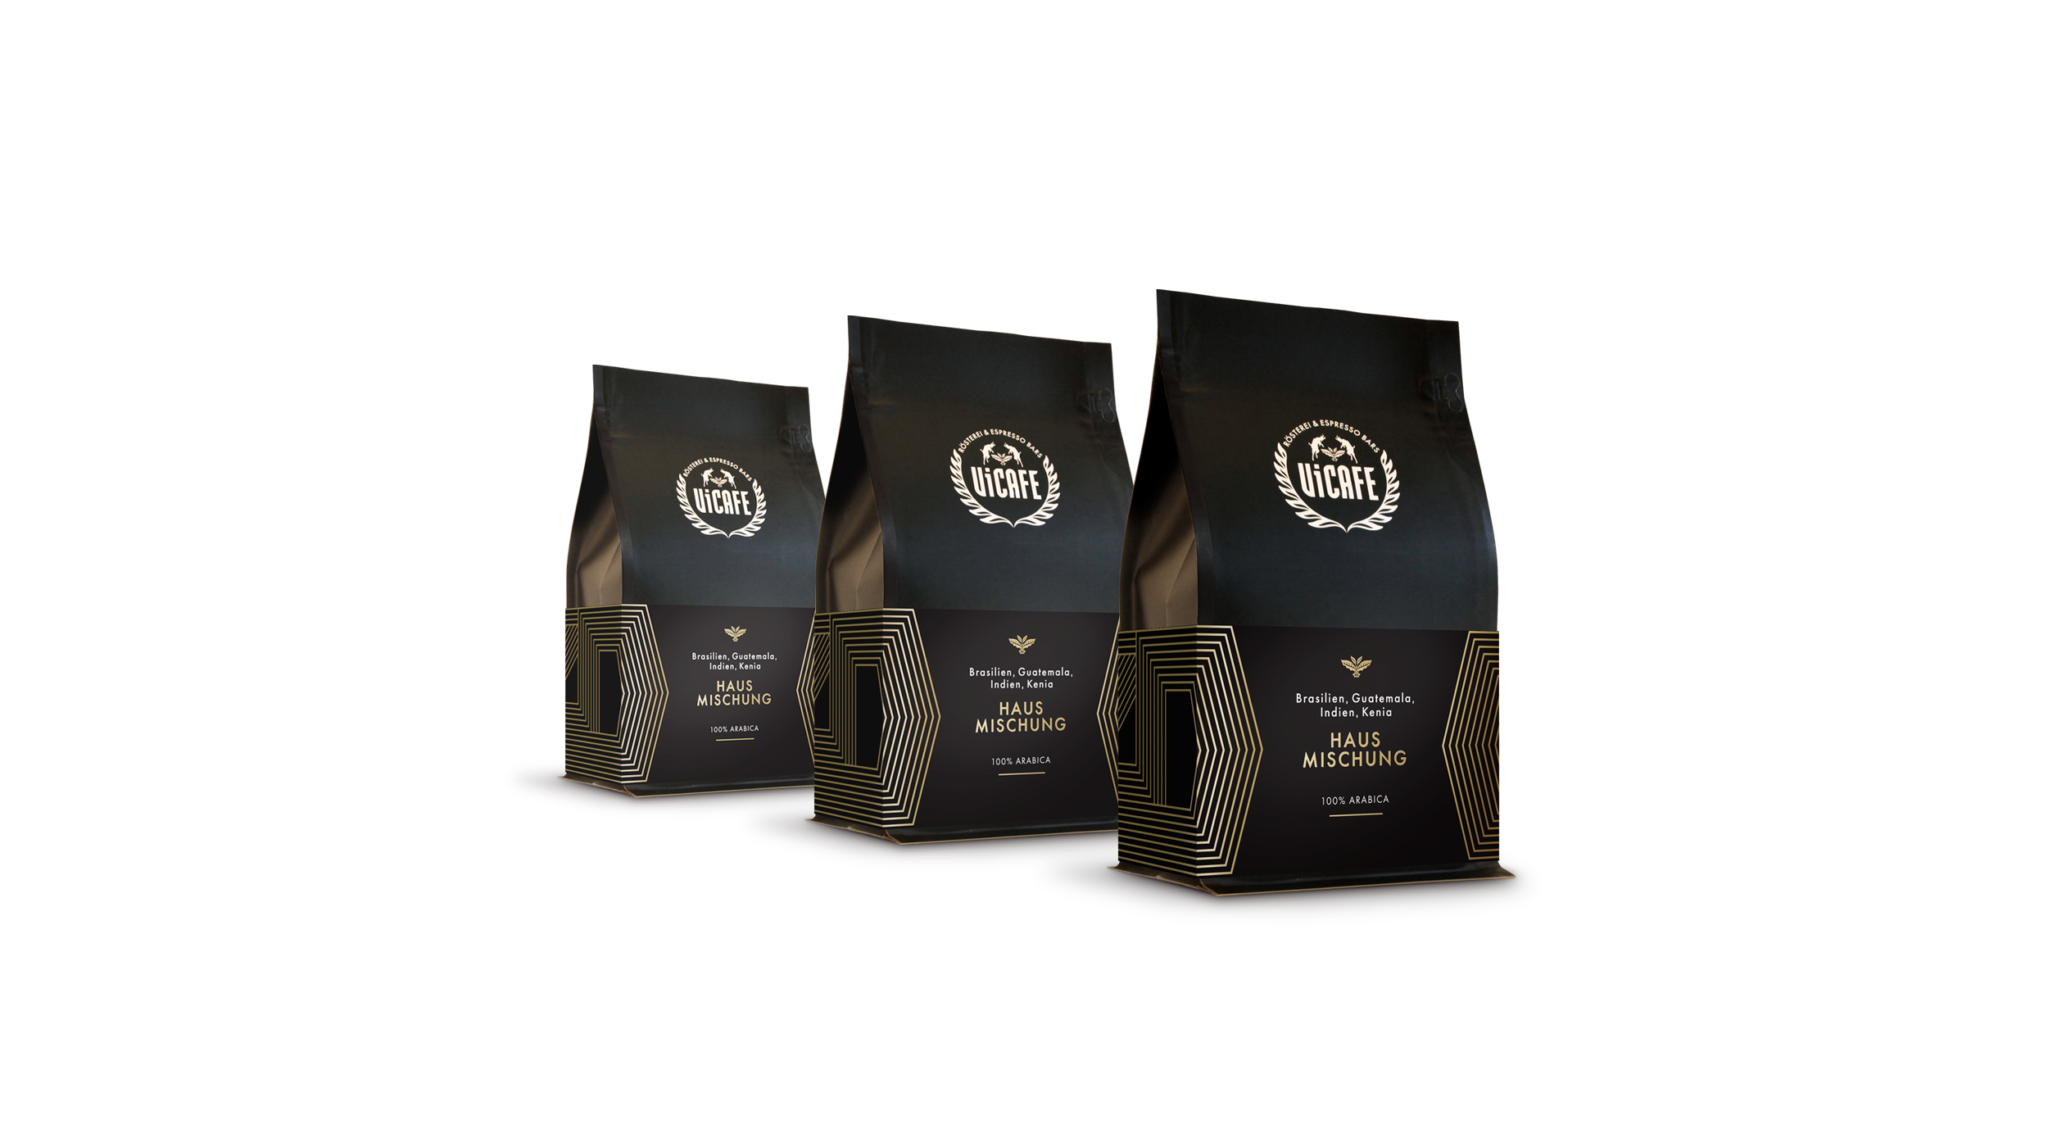 This image vicafe coffee bags is for visual improvements for page for your office